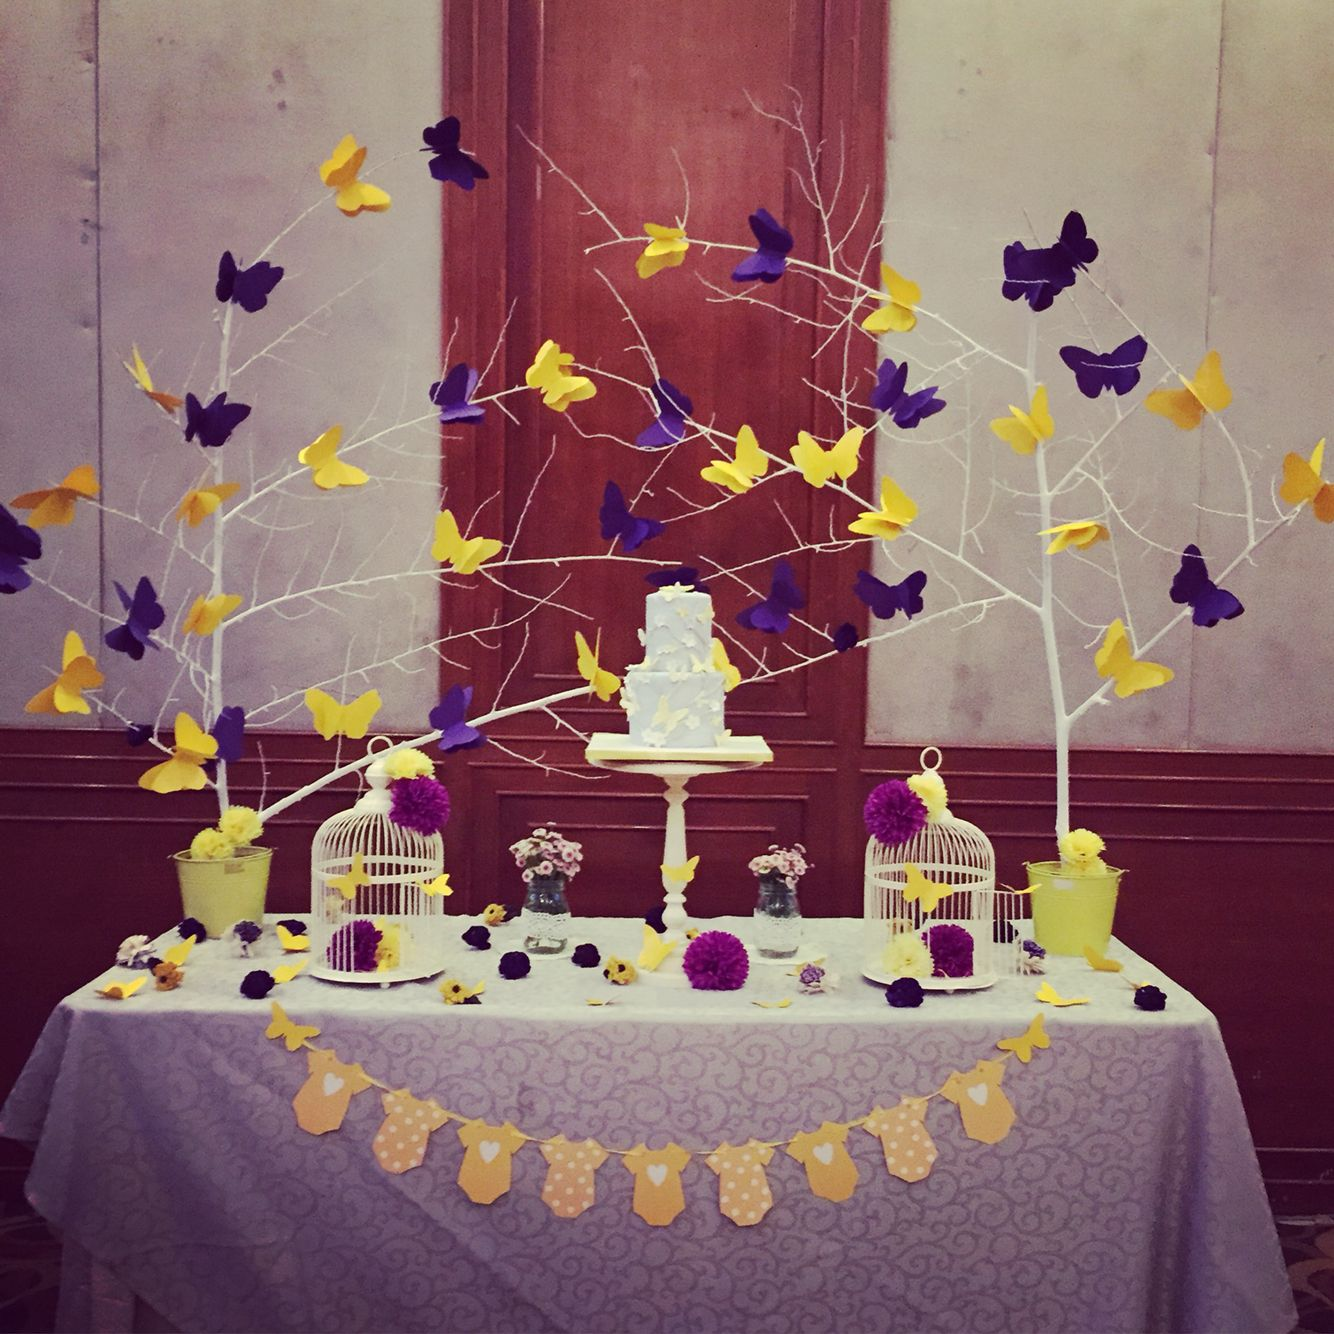 Butterfly Theme For Baby Shower Part - 47: Butterfly Themed Baby Shower. Yellow And Purple Theme. Gender Neutral. Done  By With